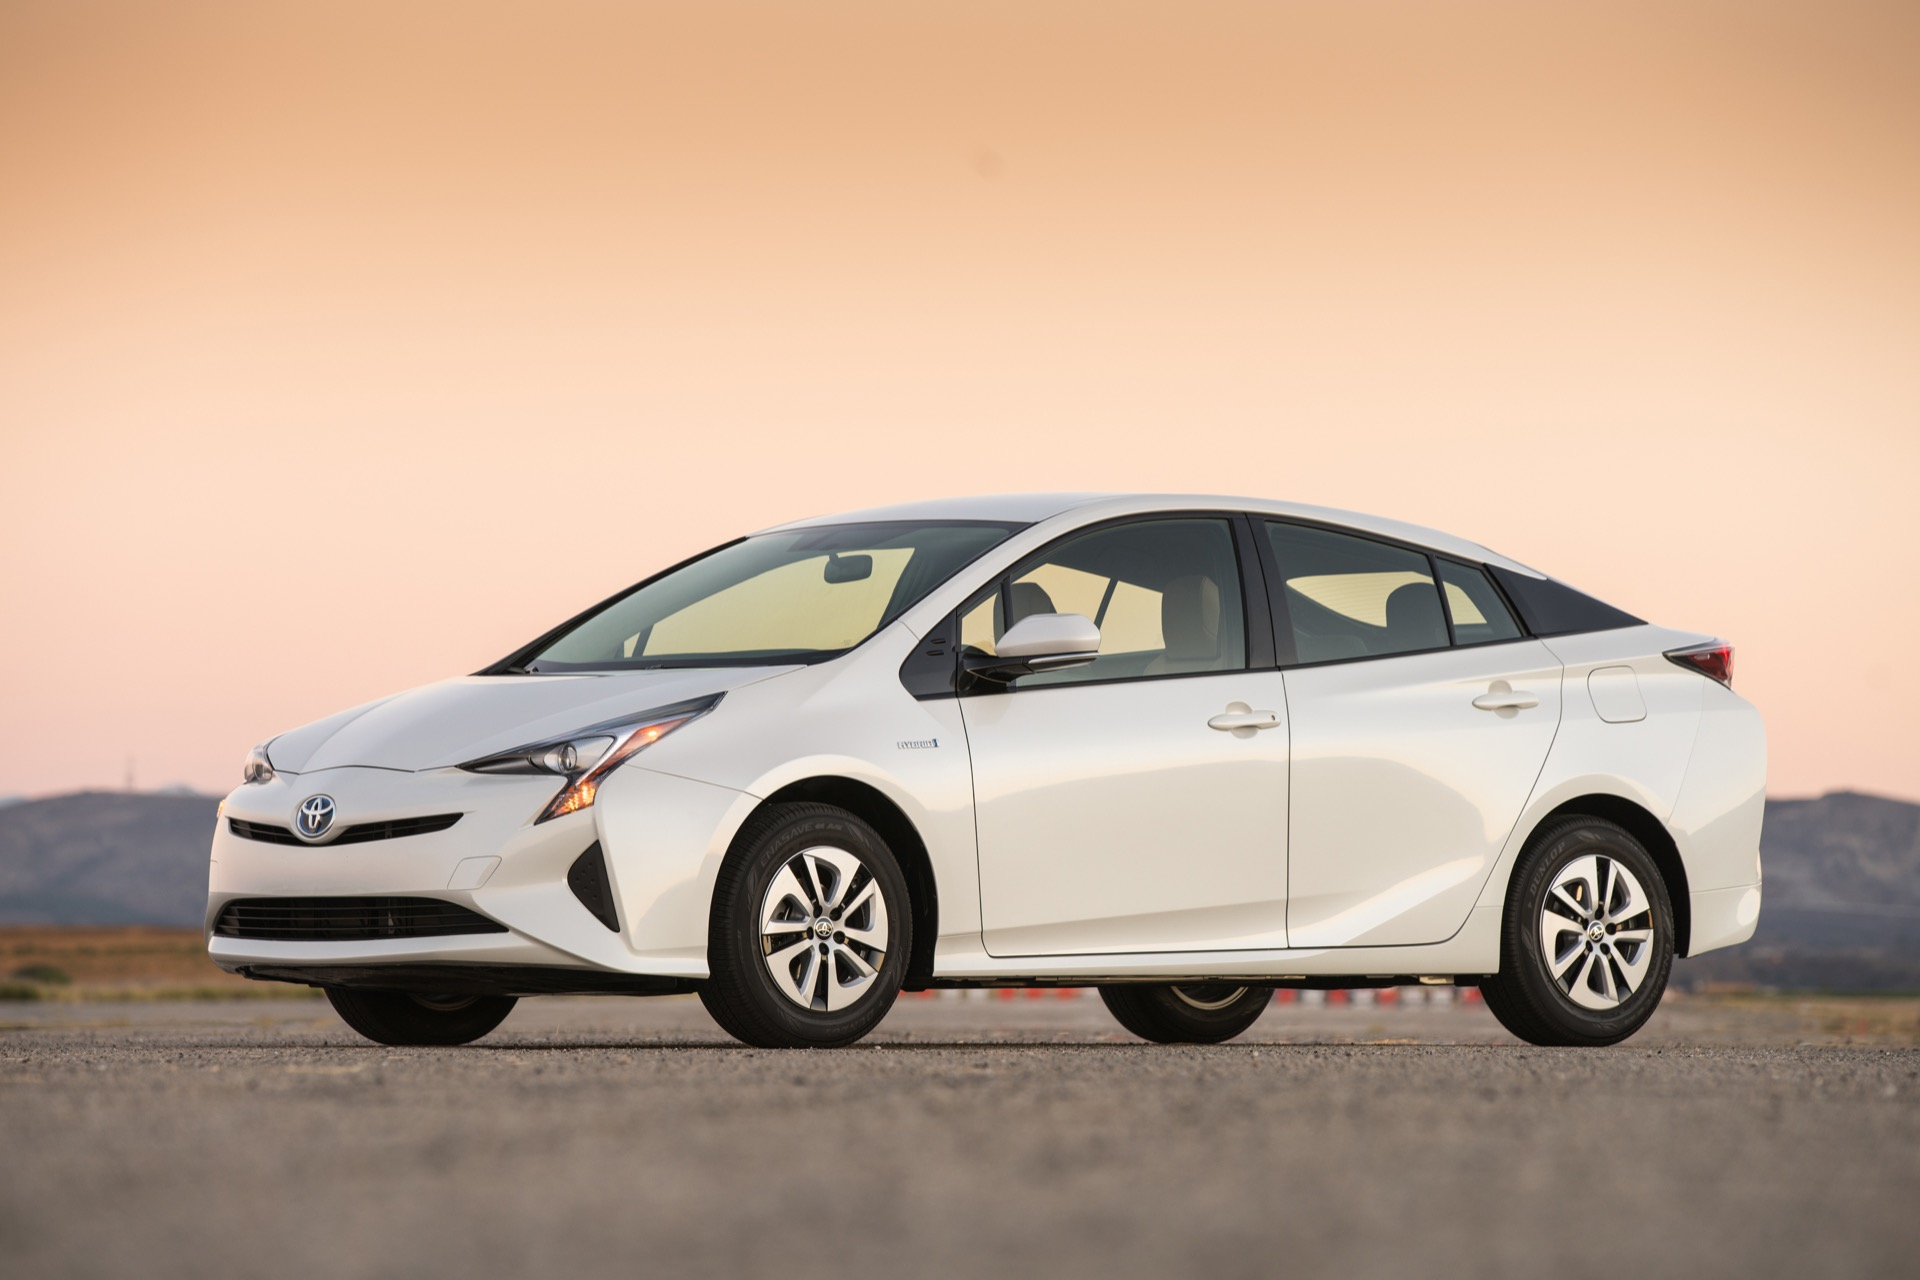 Used Toyota Prius: Prices, Photos, Reviews, Specs  The Car Connection